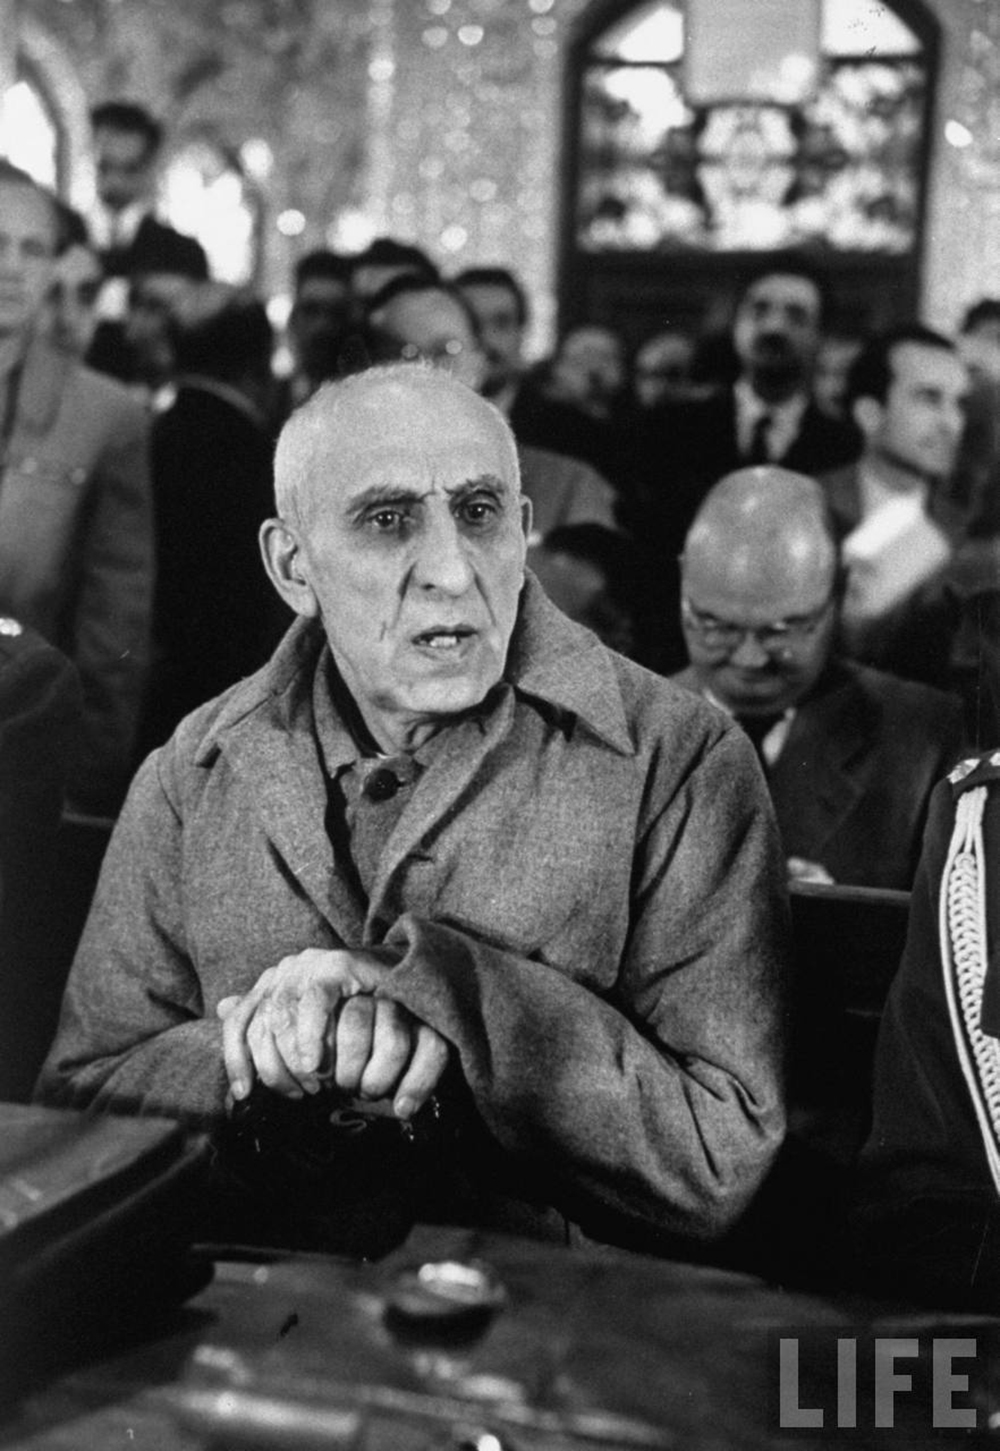 Mohamed Mossadegh, sitting in court, 1953. Photograph by Carl Mydans / Life Magazine.